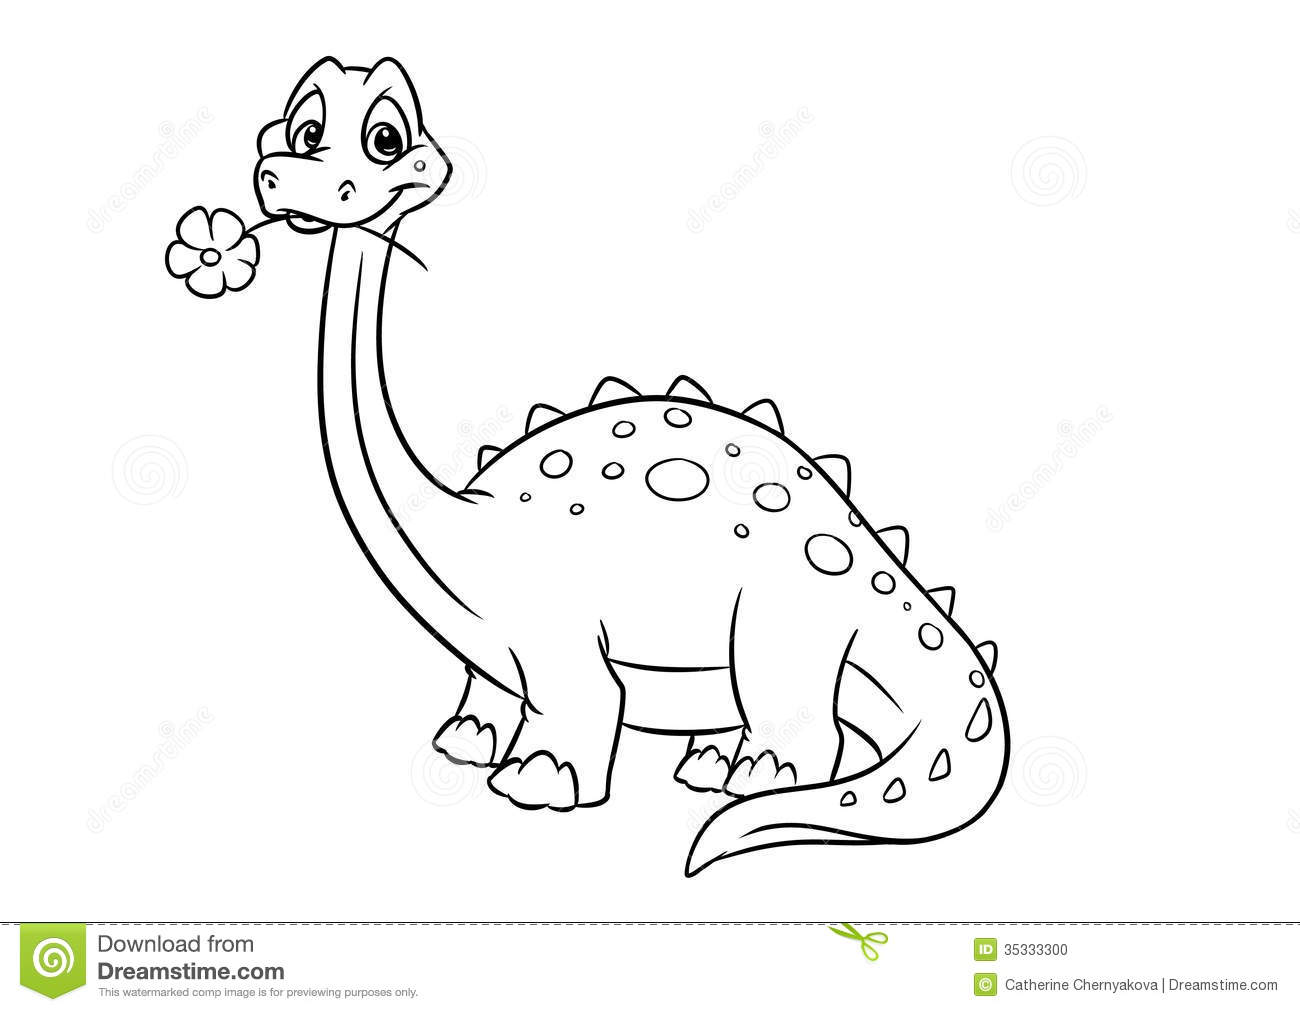 Dinosaur Coloring Pages Preschool preschool dinosaur coloring pages ...